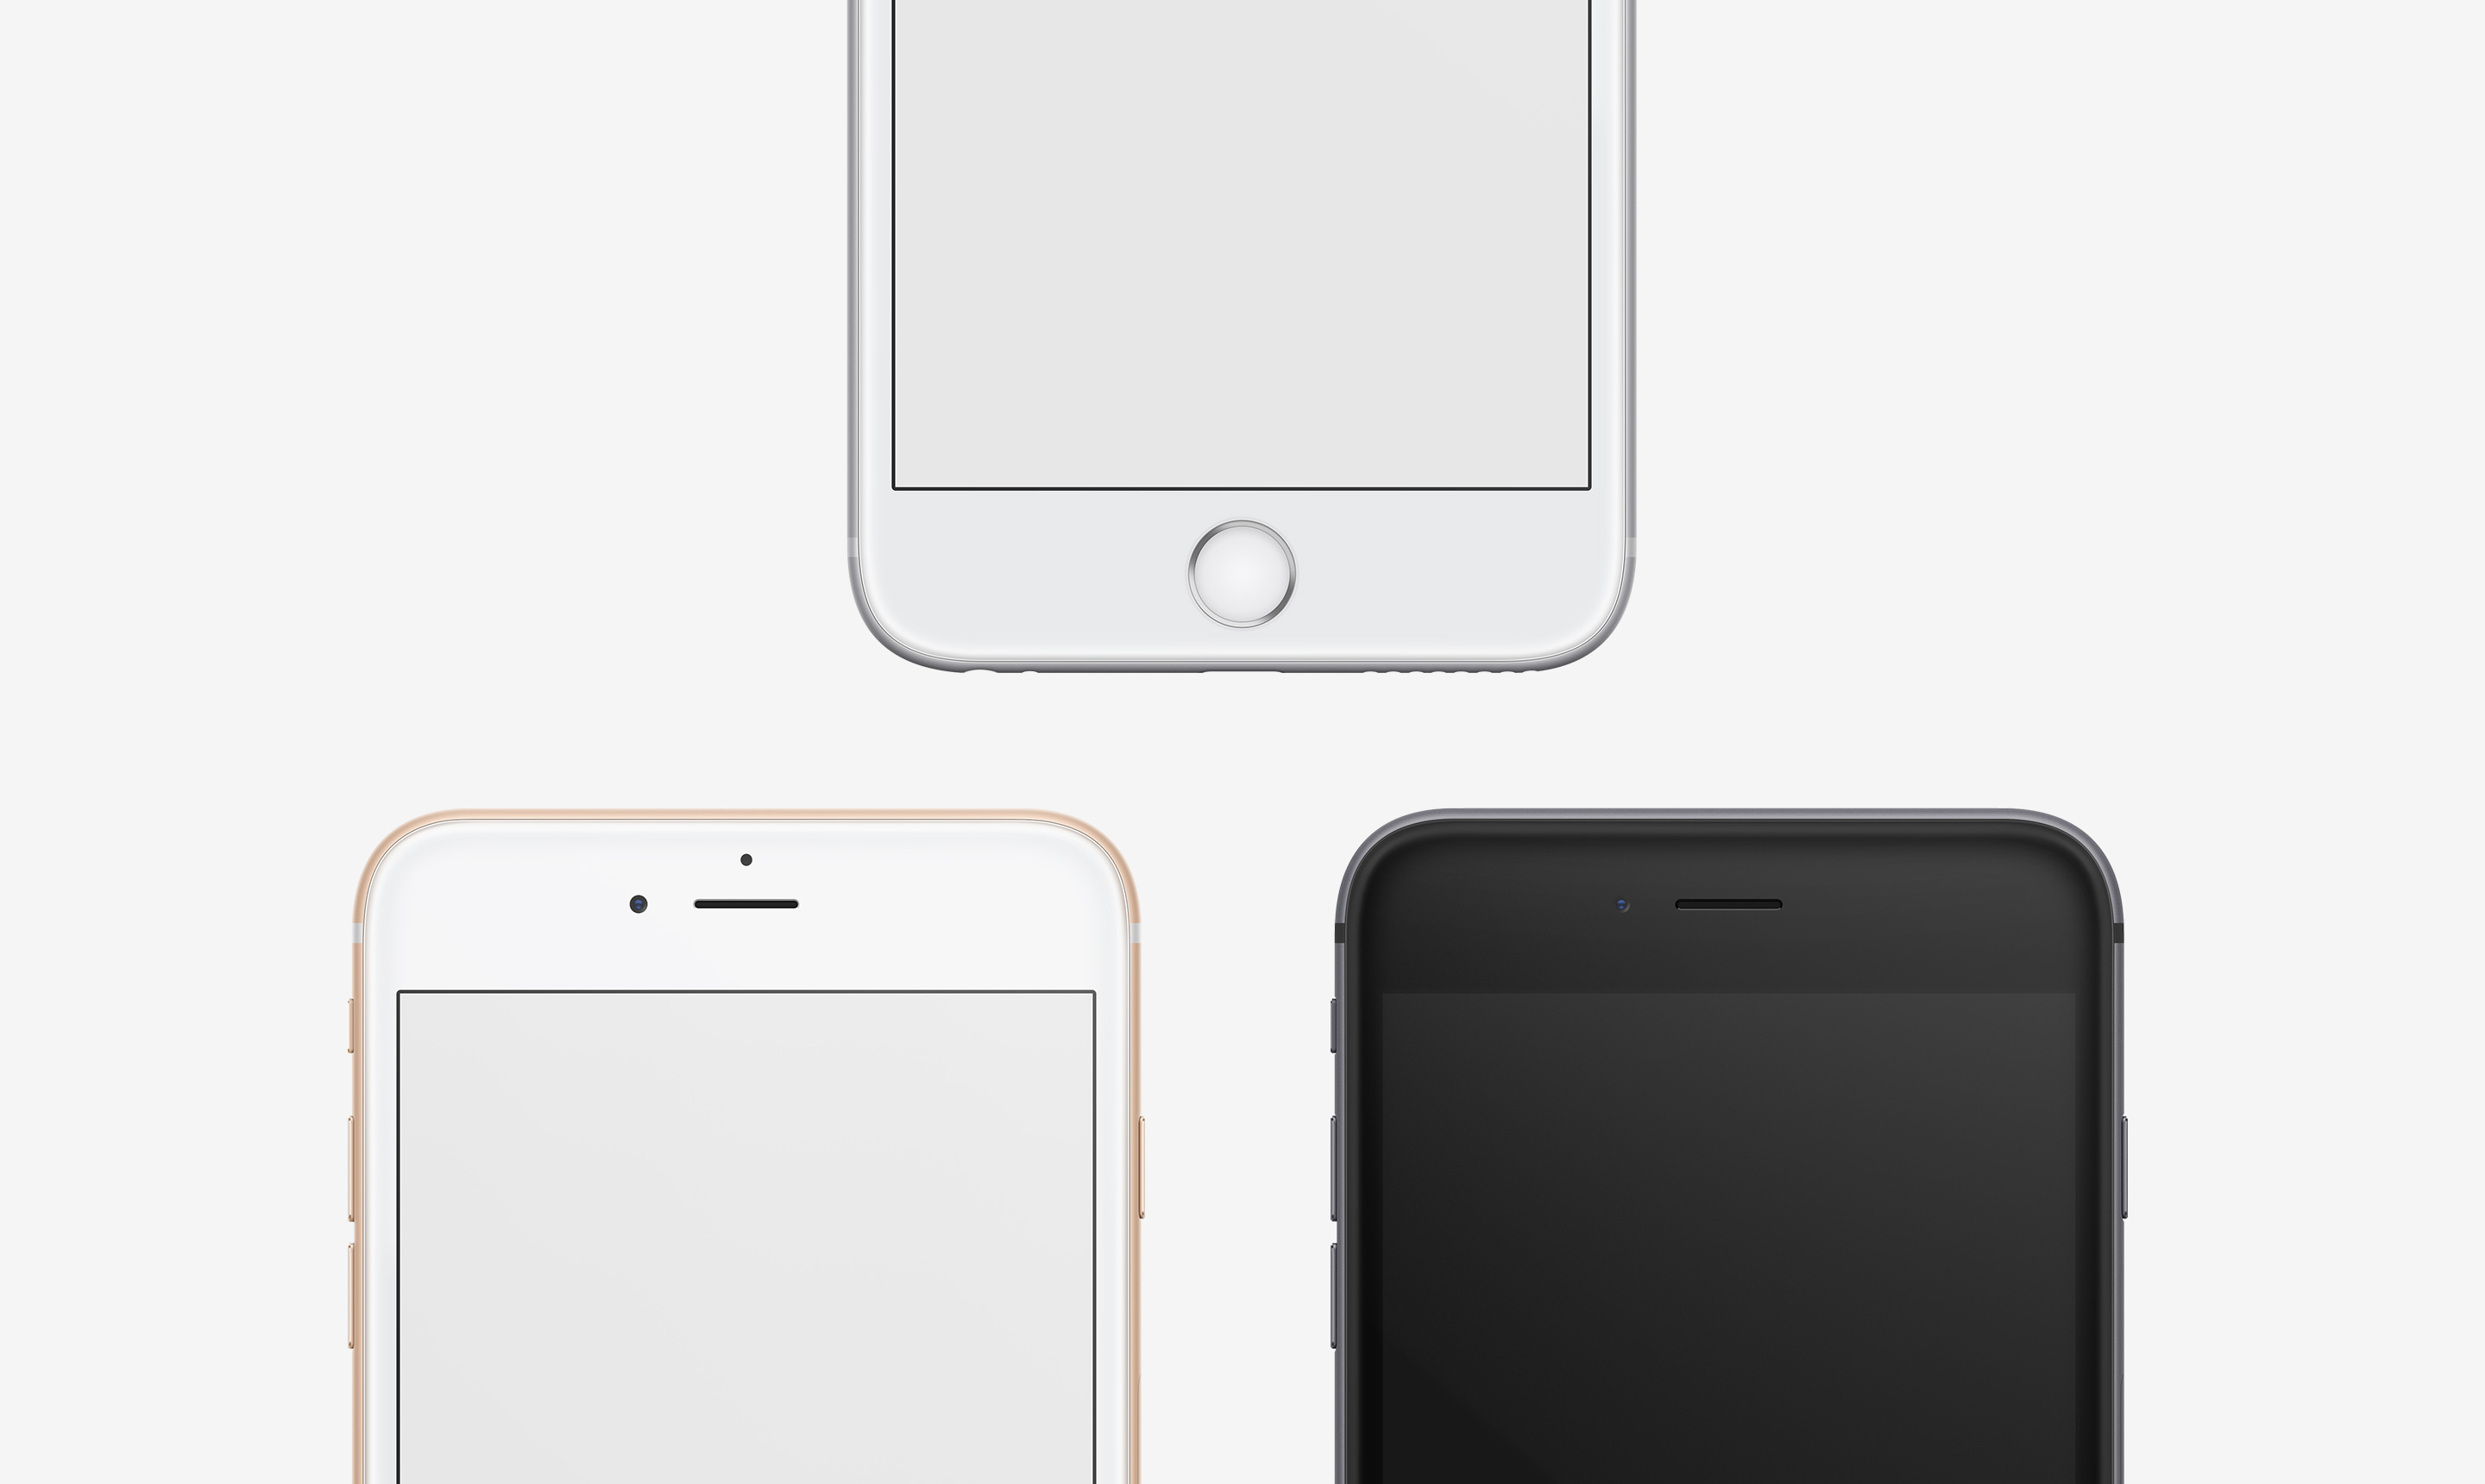 iphone 6 plus frontal gold white space gray psd